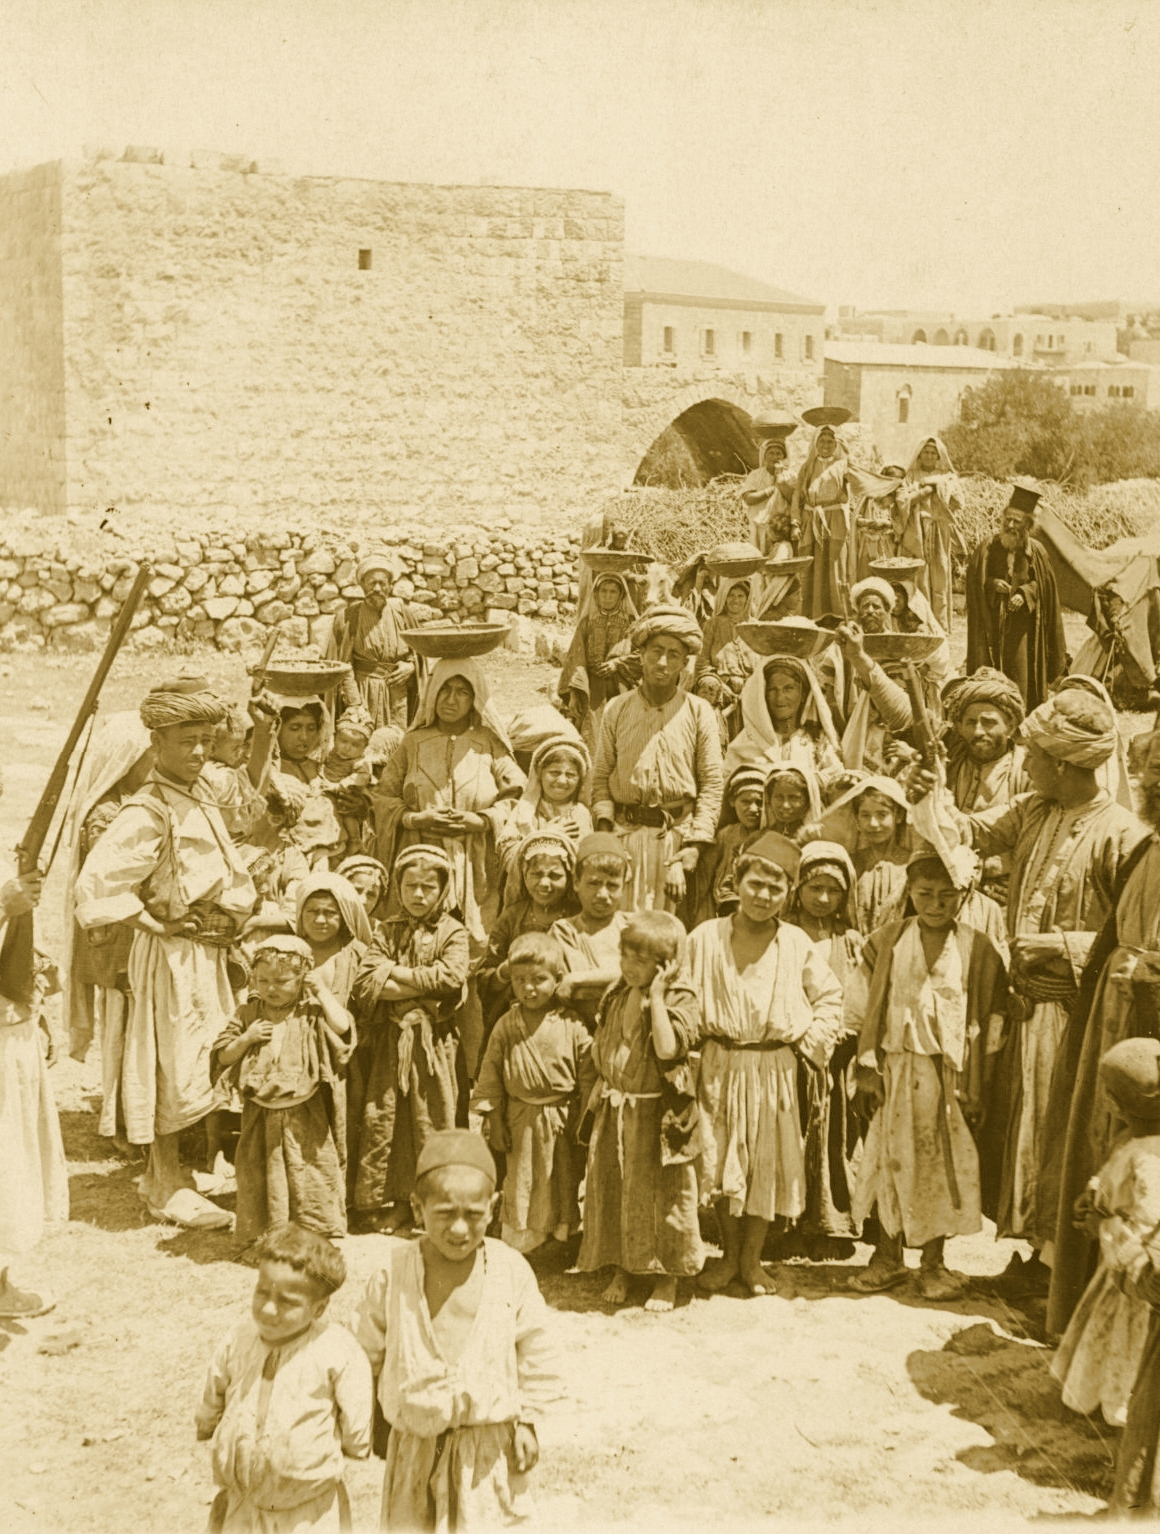 Ramallah - رام الله : A WEDDING AT RAMALLAH, PALESTINE (ca. 1900) - Women going to the wedding feast with food (in woodden platters) - Keystone-Mast Collection (Per Reem Ackall)